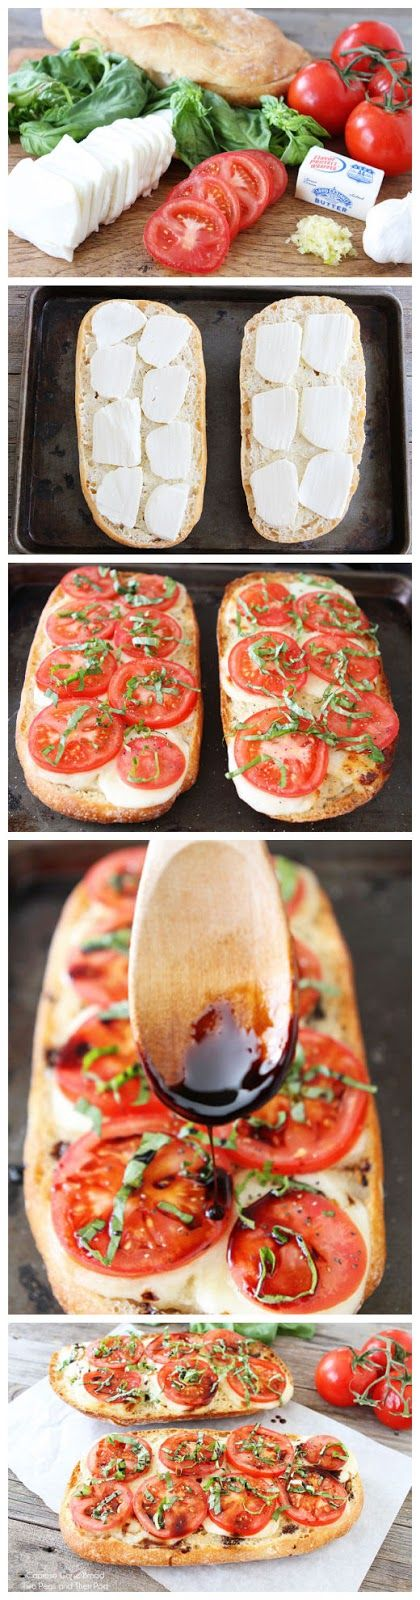 Caprese Garlic Bread The BEST garlic bread recipe! #bread #summer